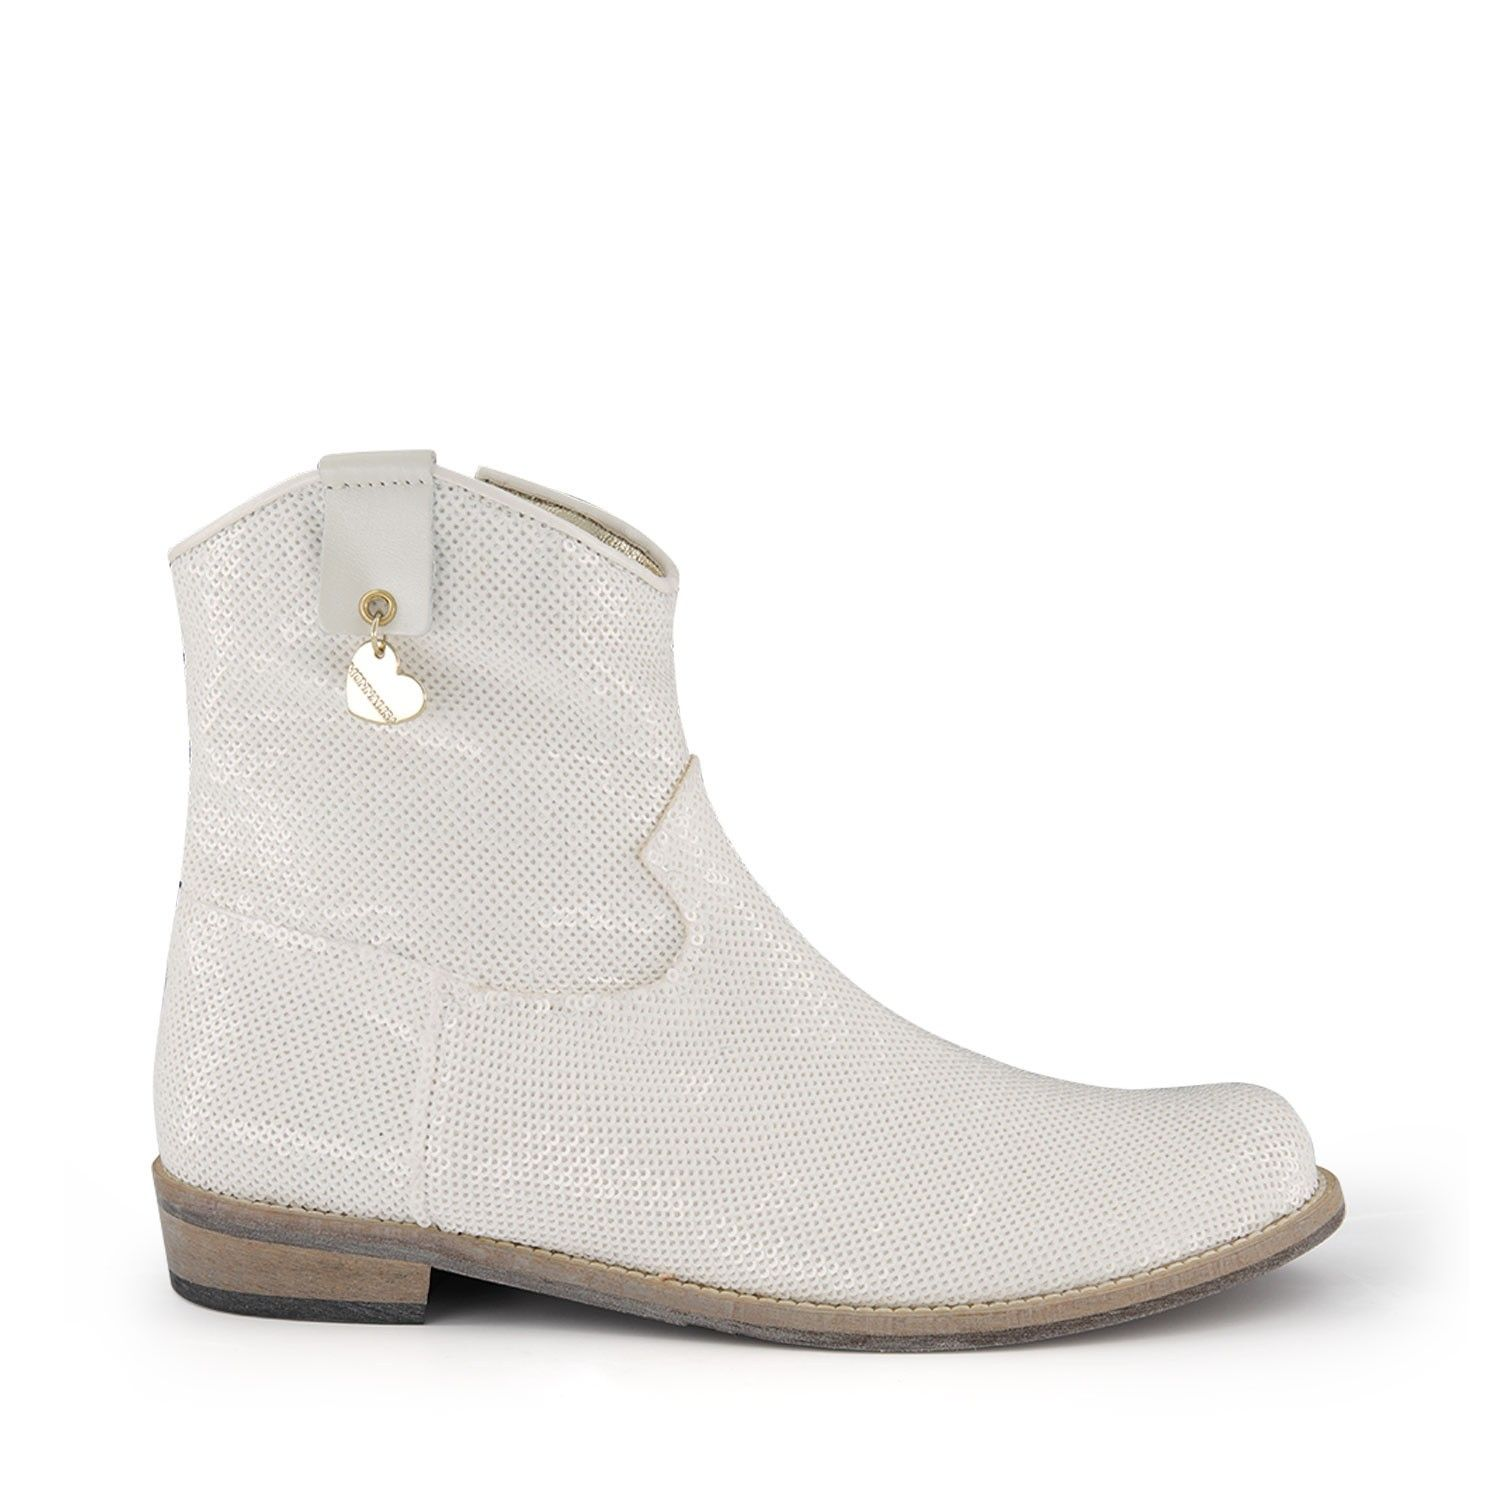 Picture of MonnaLisa 875004 kids boots white